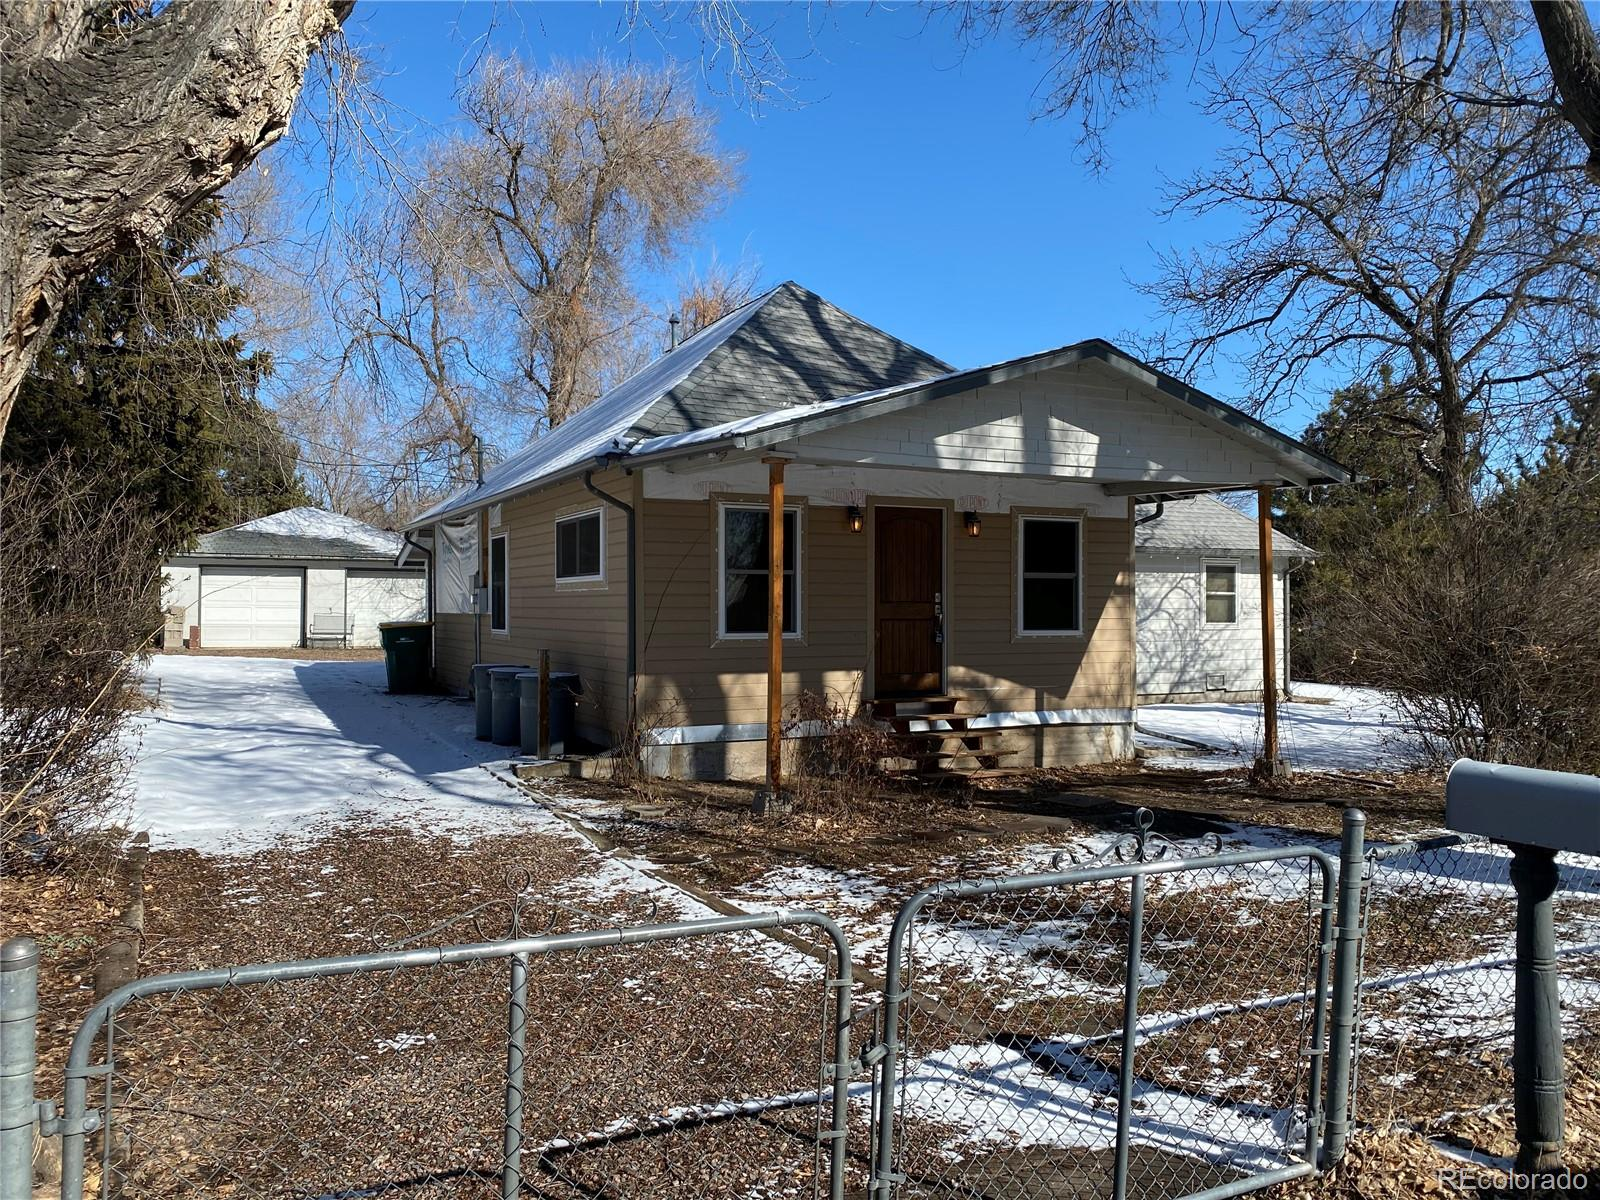 MLS# 5254174 - 1 - 8885 W 64th Place, Arvada, CO 80004